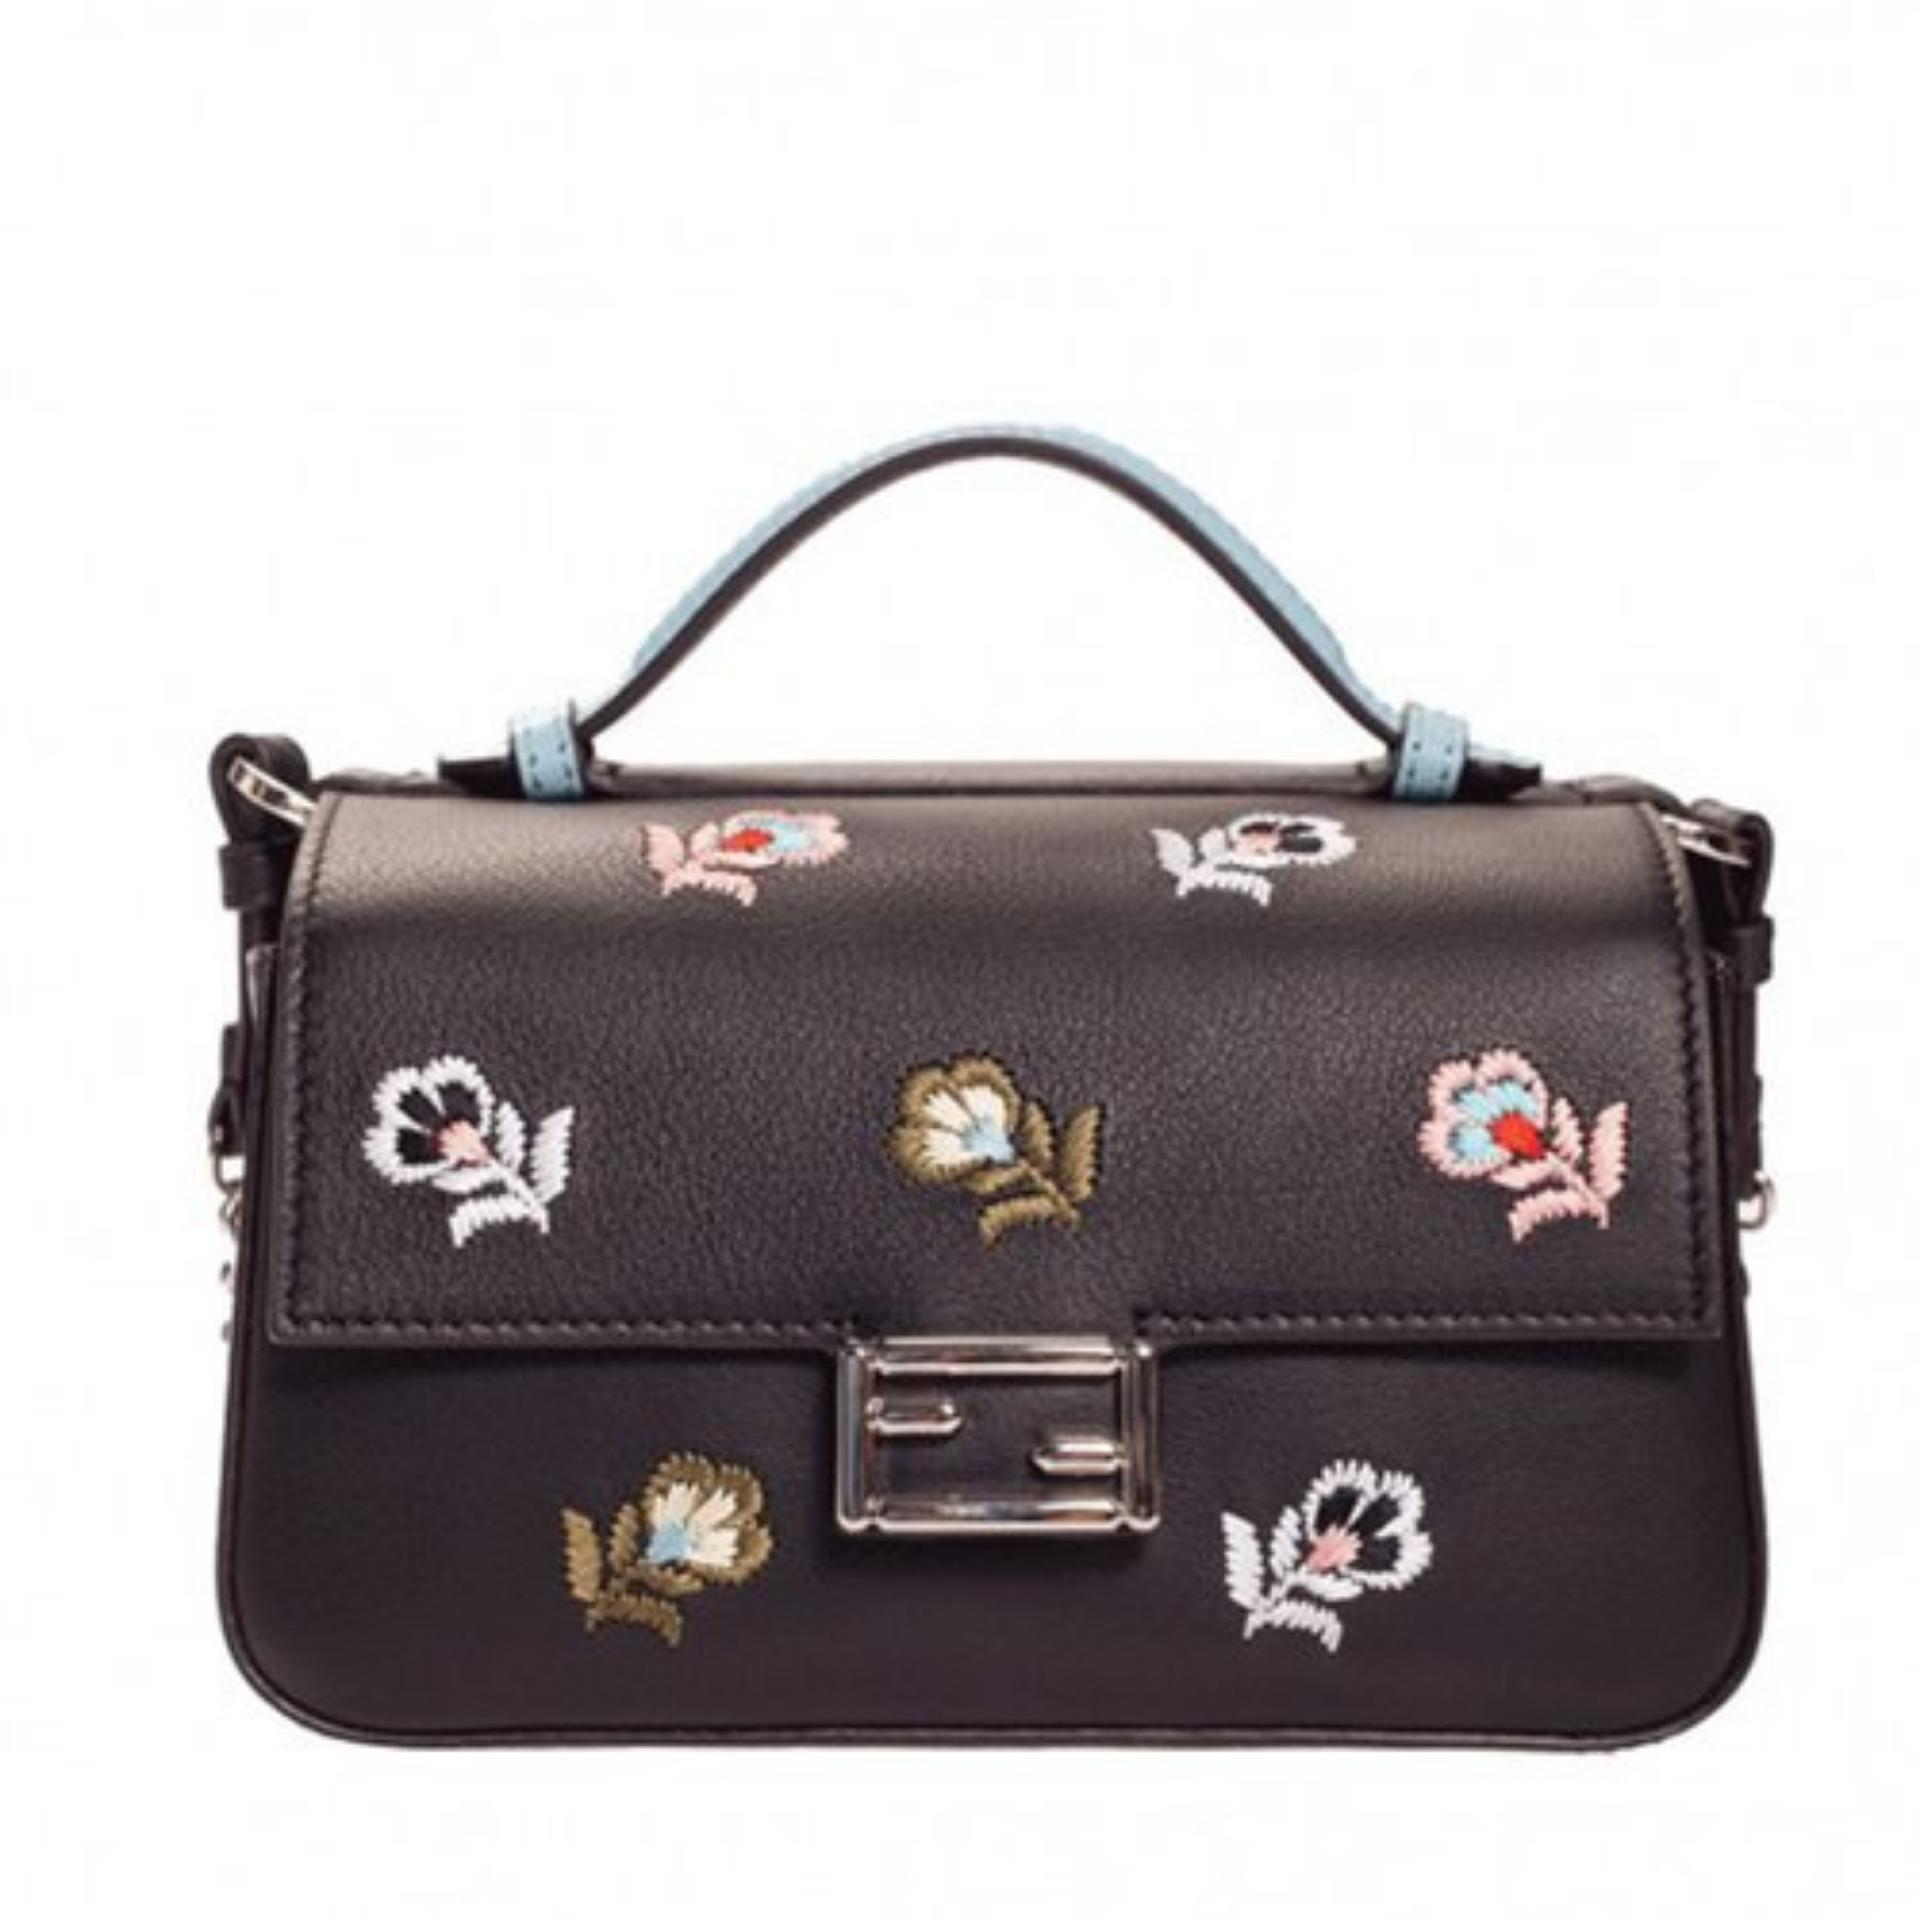 7c9ad07085b Fendi Embroidered Double Micro Bag Bugs Baguette Bag (Black)    8M0371OYTF03DG